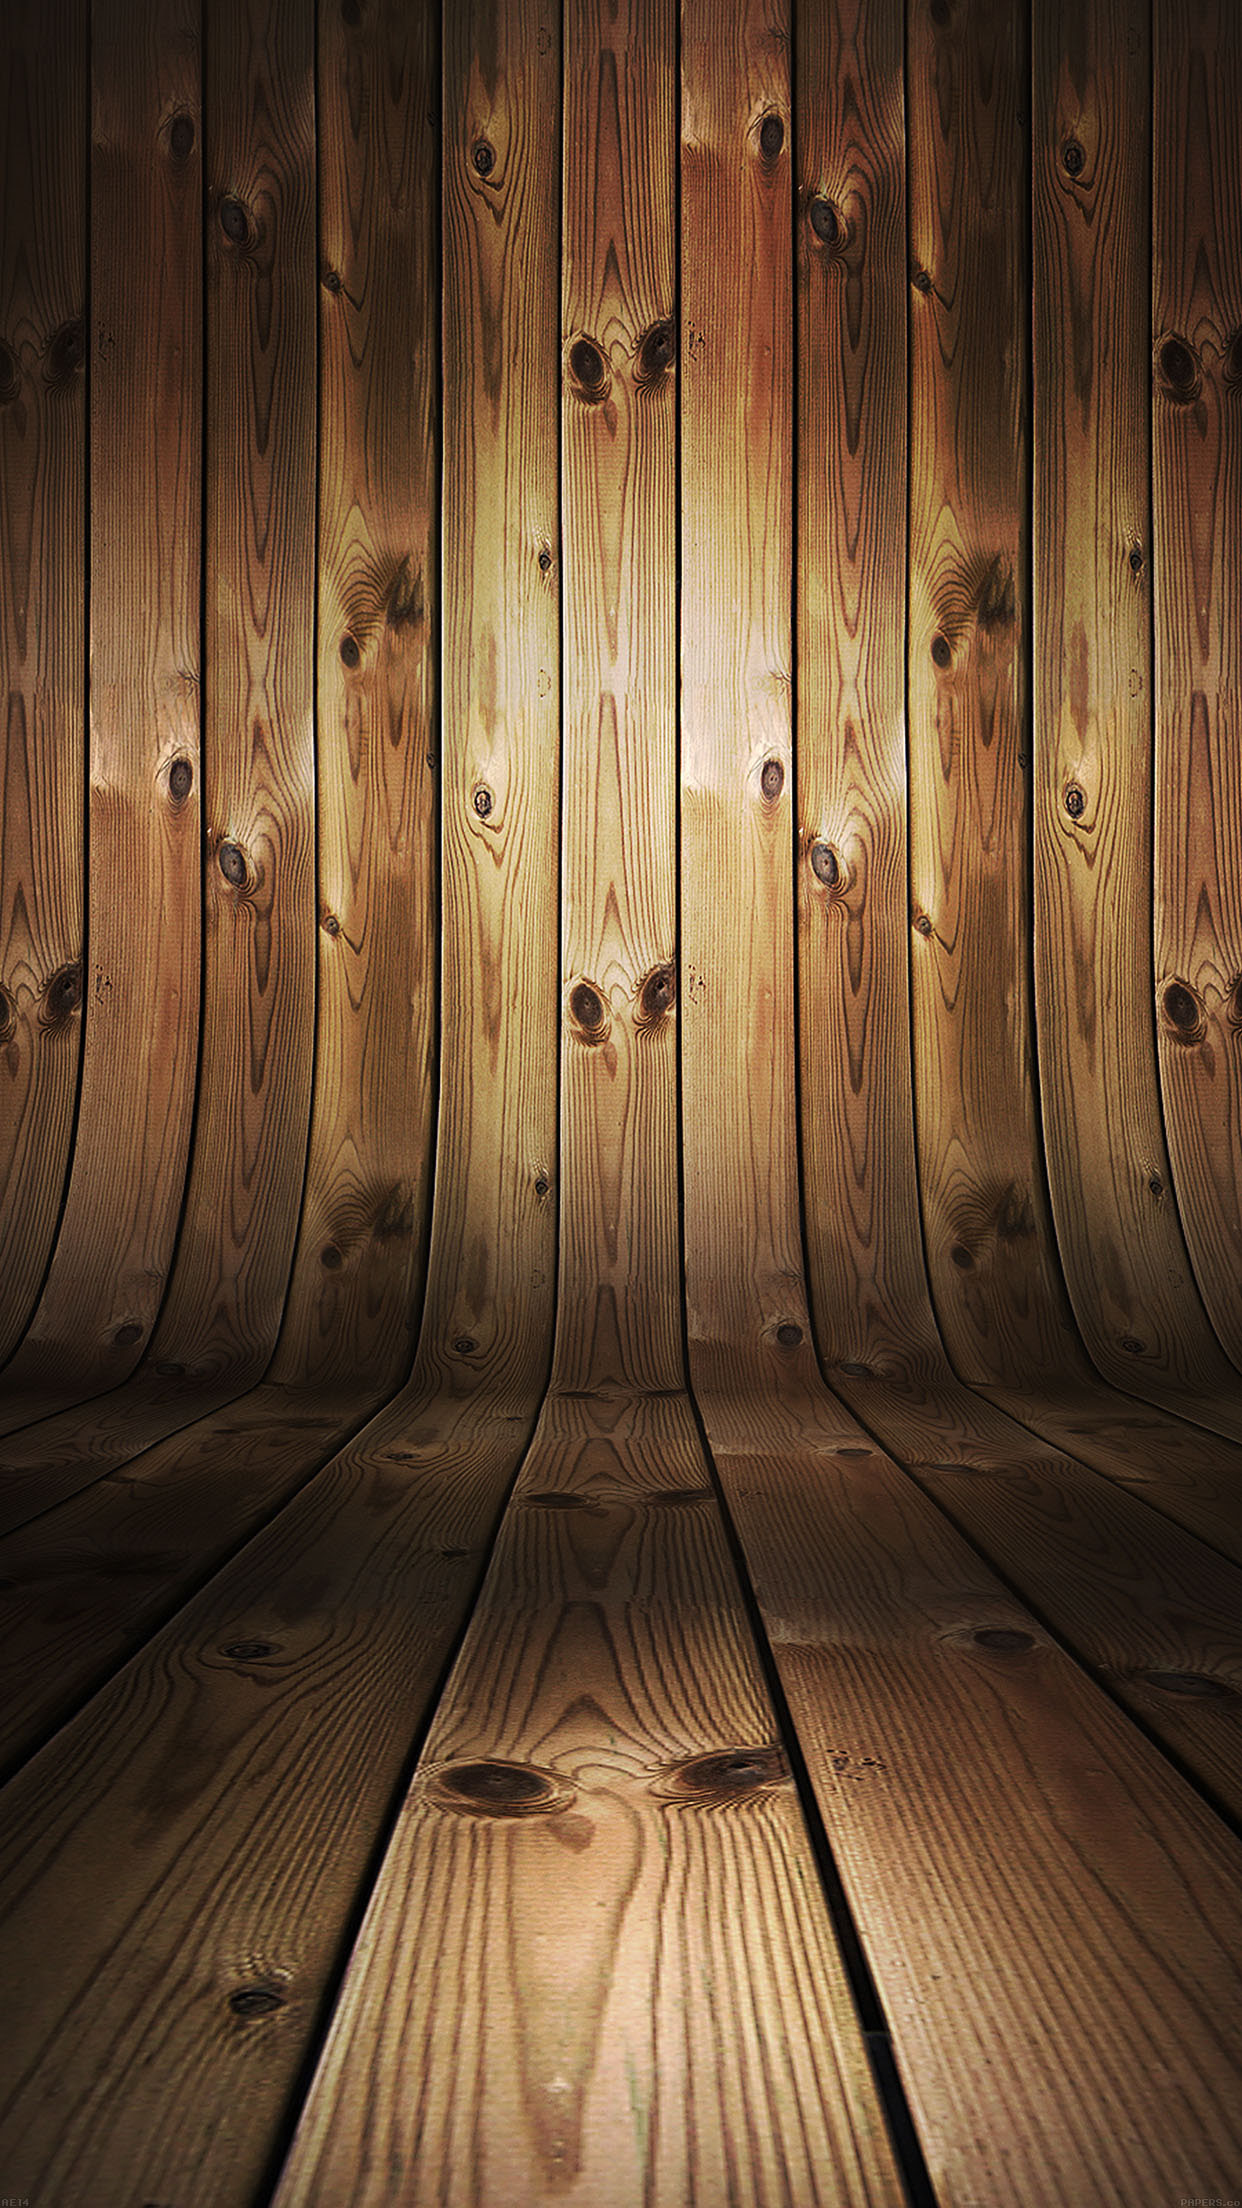 ae14-dark-bent-wood-background-wallpaper